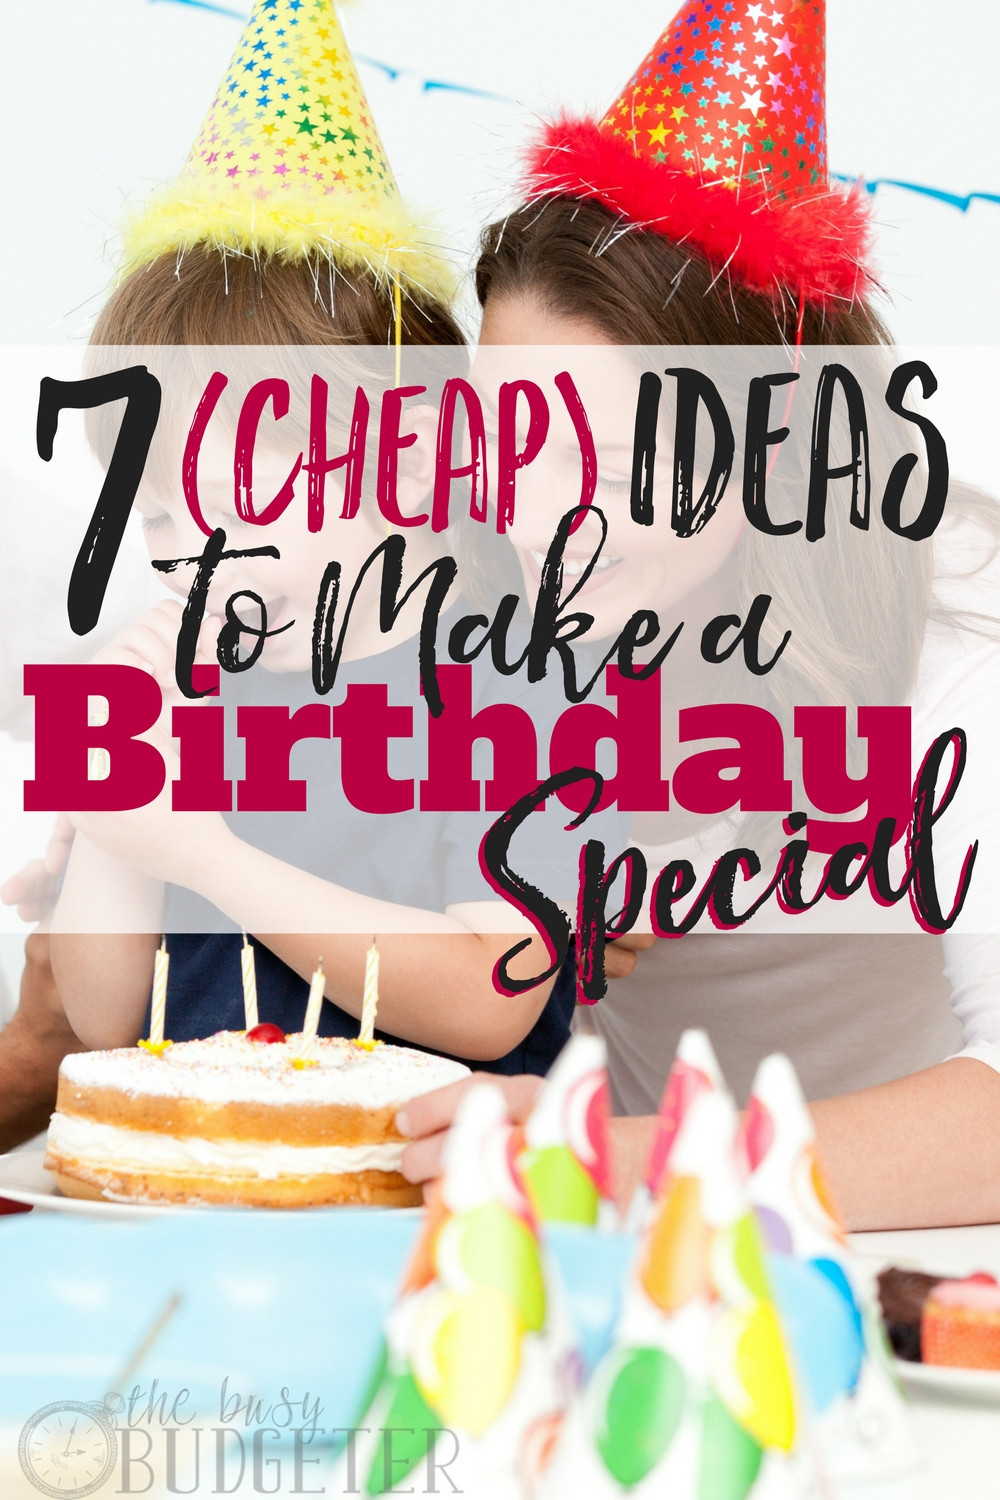 Best ideas about Cheap Birthday Ideas . Save or Pin 7 Cheap Ideas to Make a Birthday Special Now.